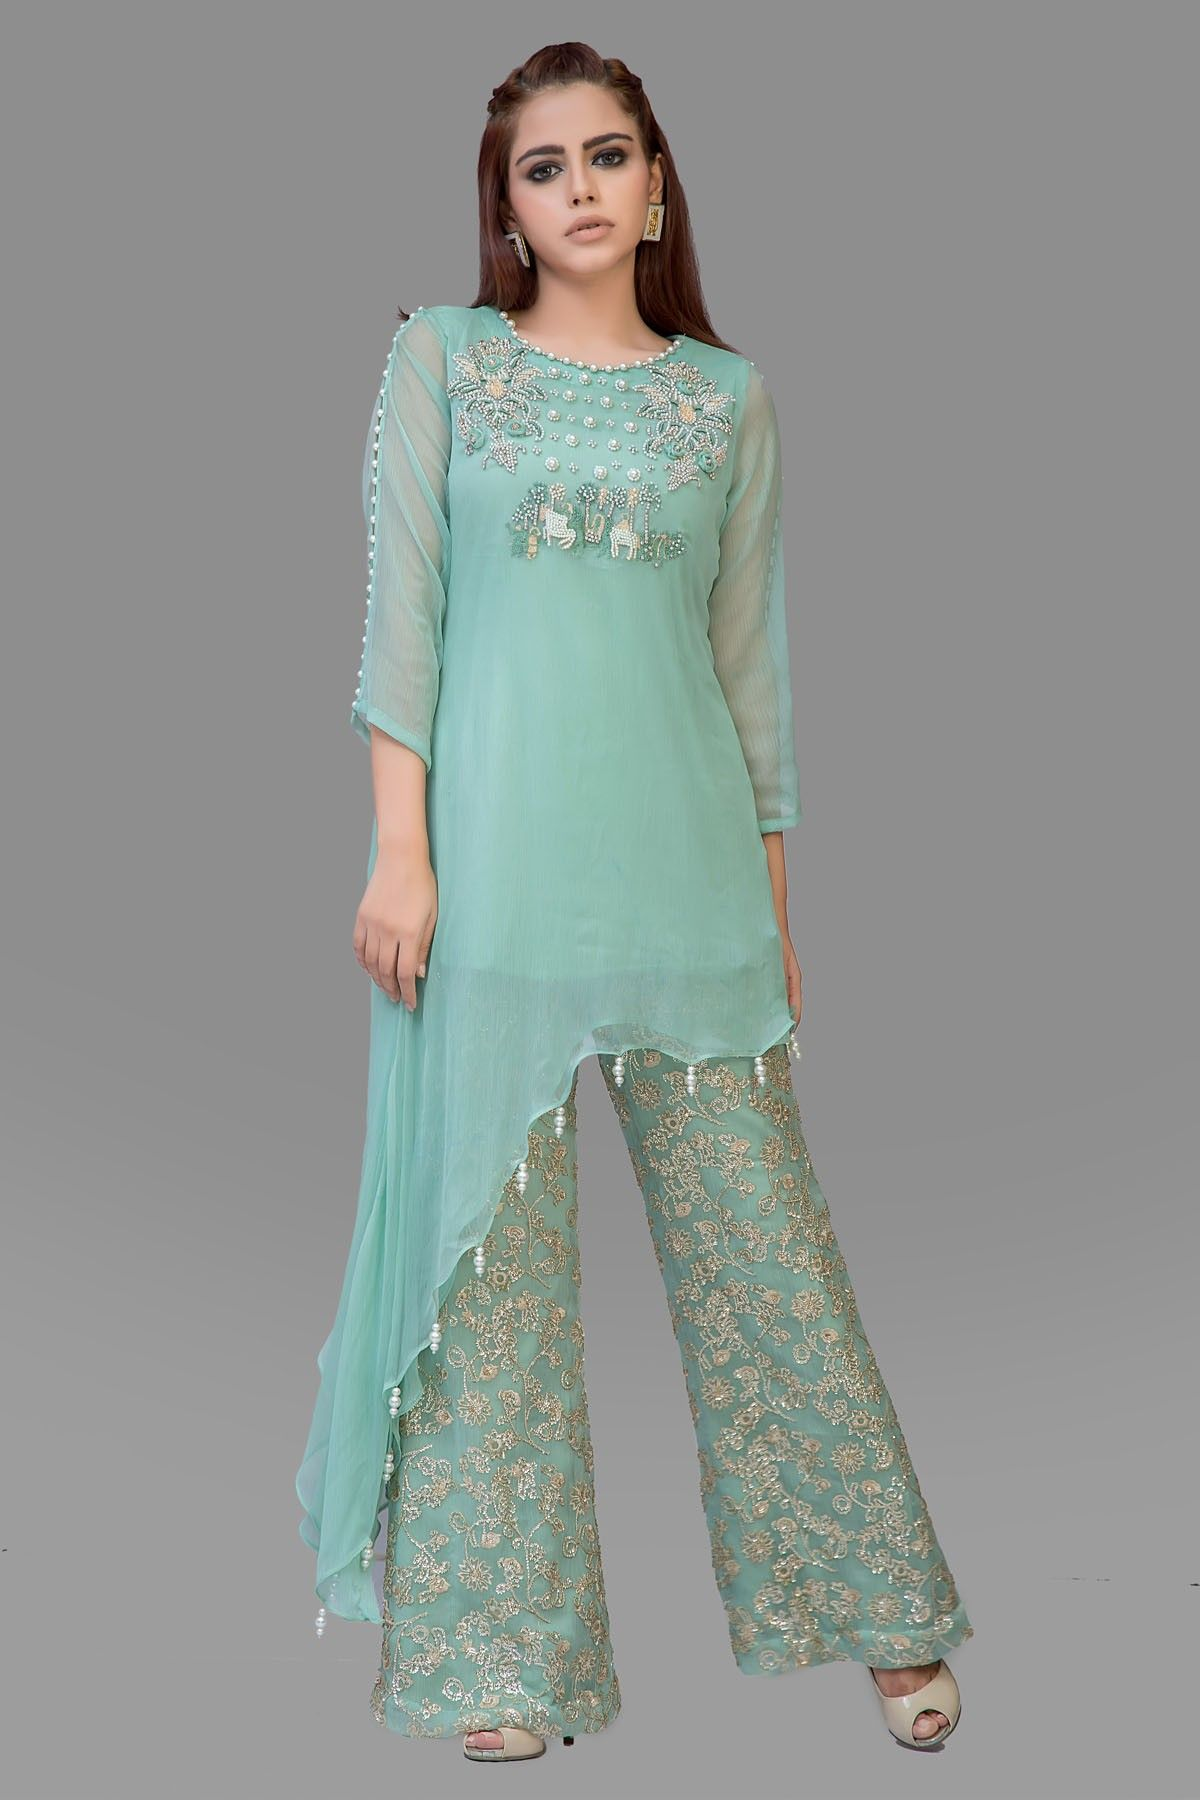 Nudrat Talha Green Embroidered Top with Pants | dress | Pinterest ...